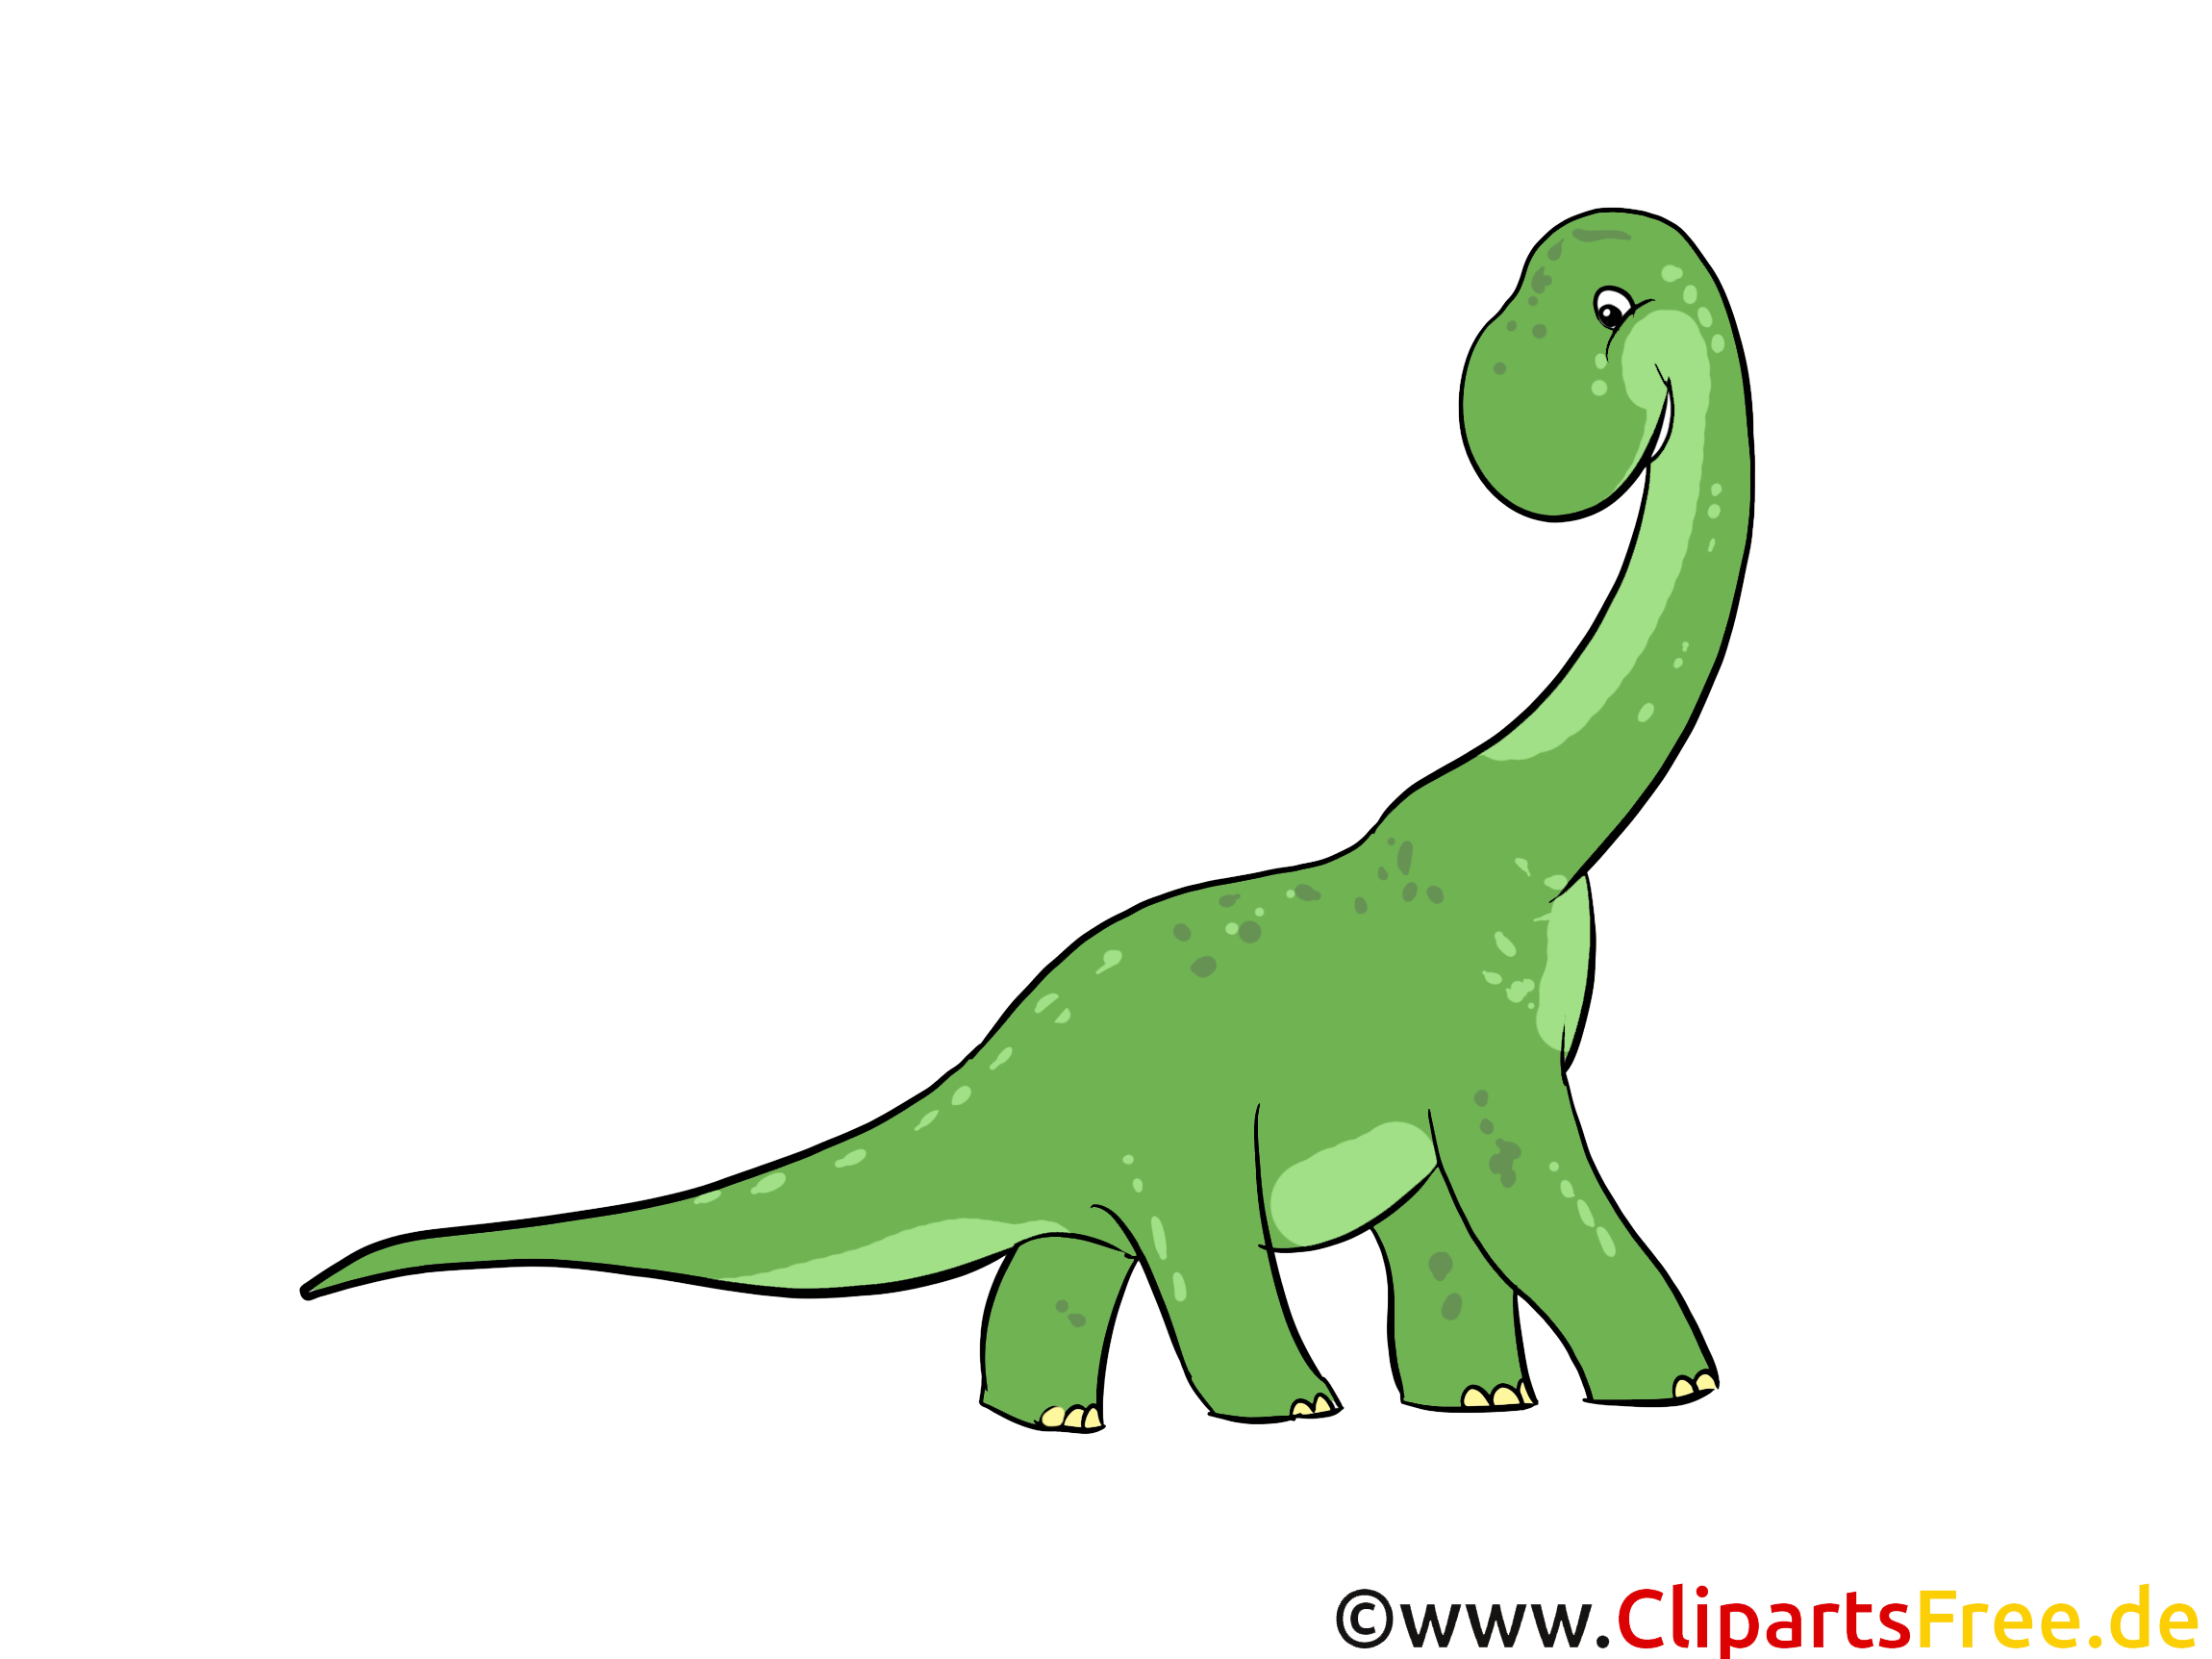 Clip arts gratuits dinosaure illustrations